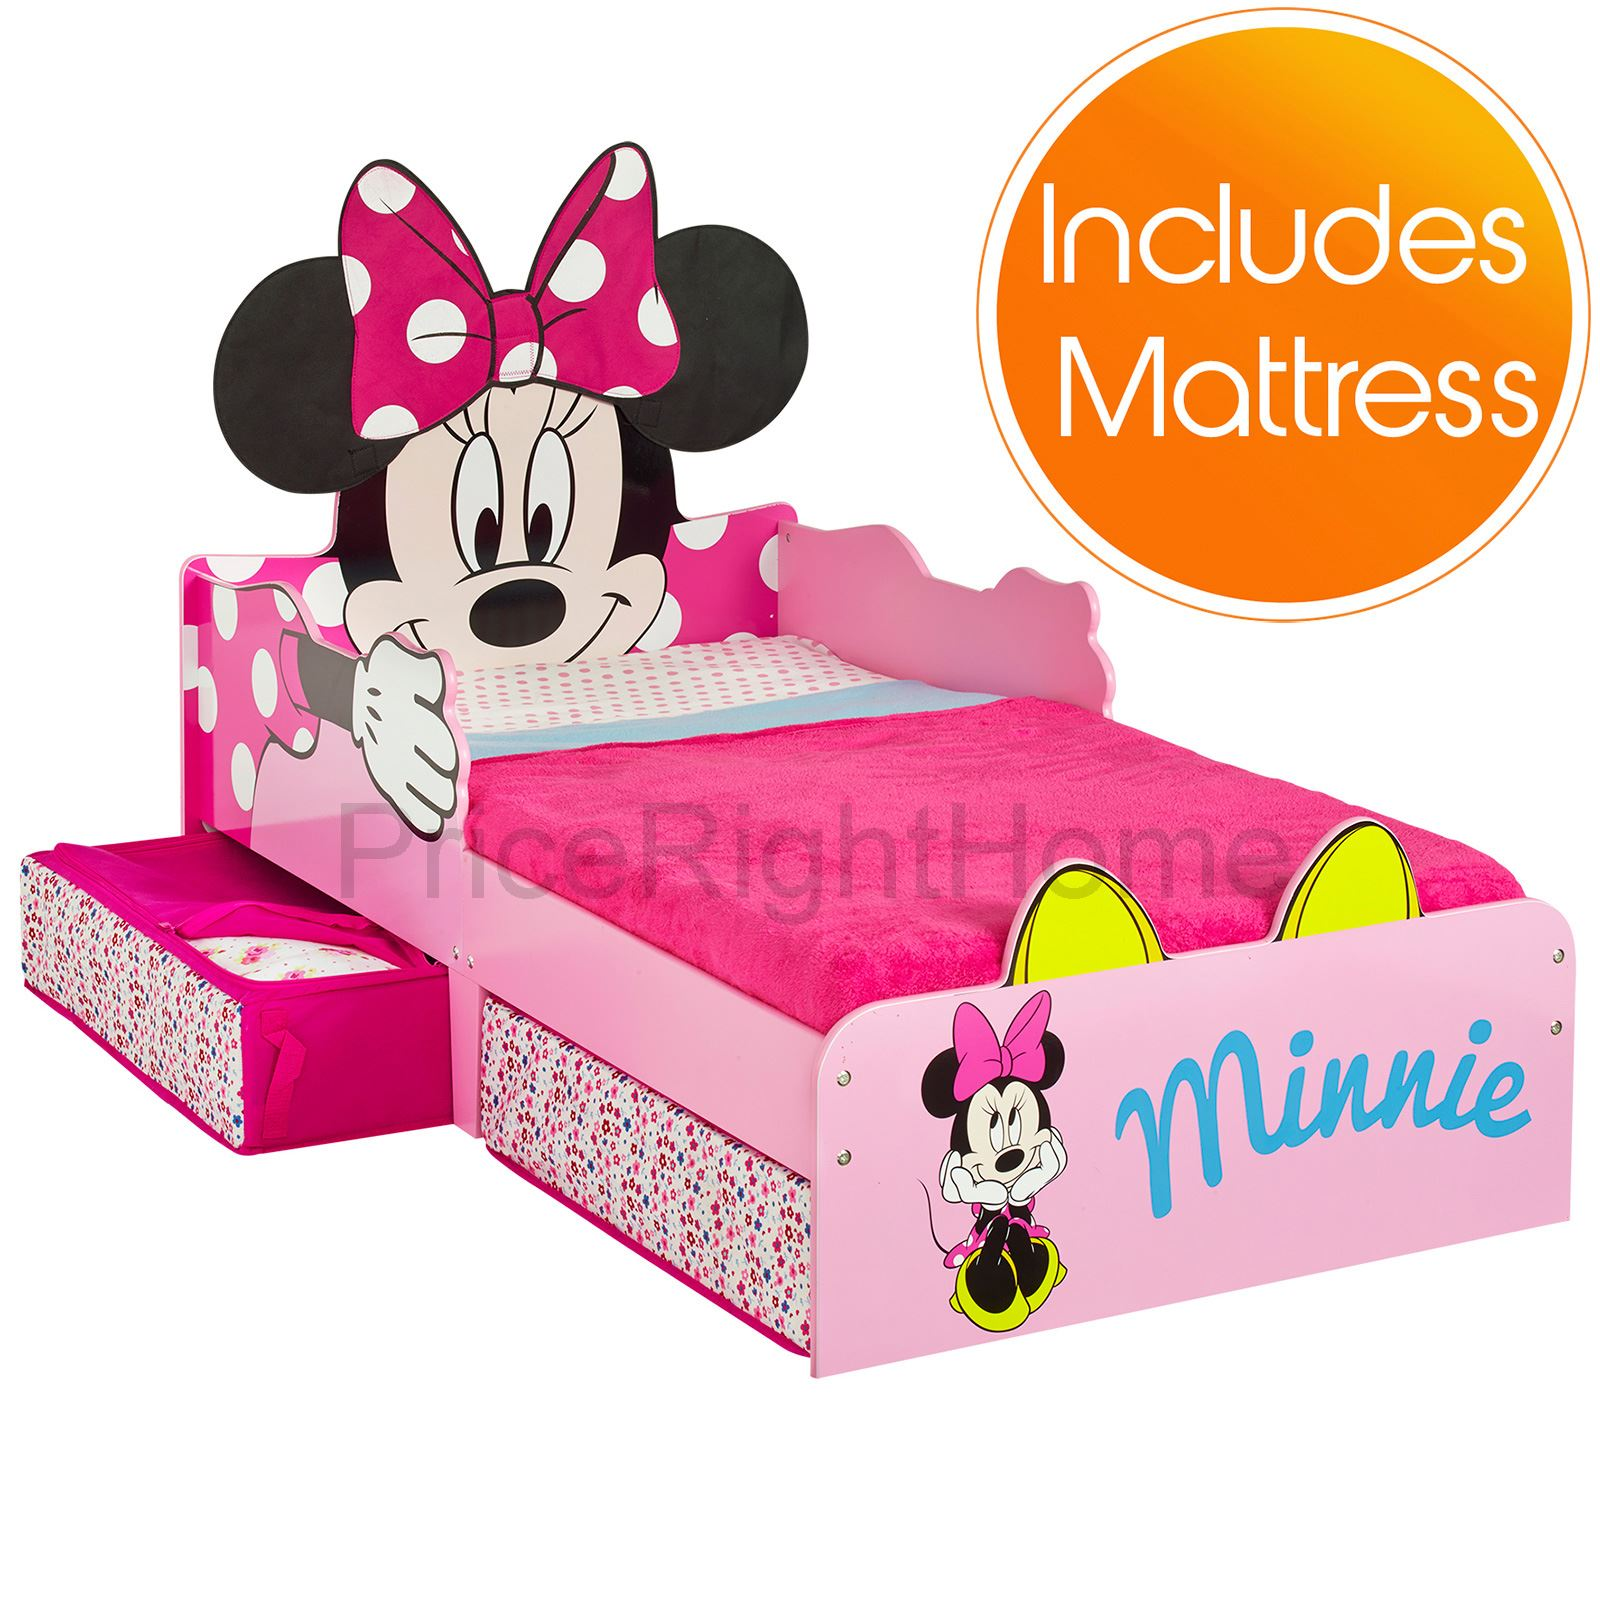 Minnie Mouse Mdf Junior Toddler Bed With Storage